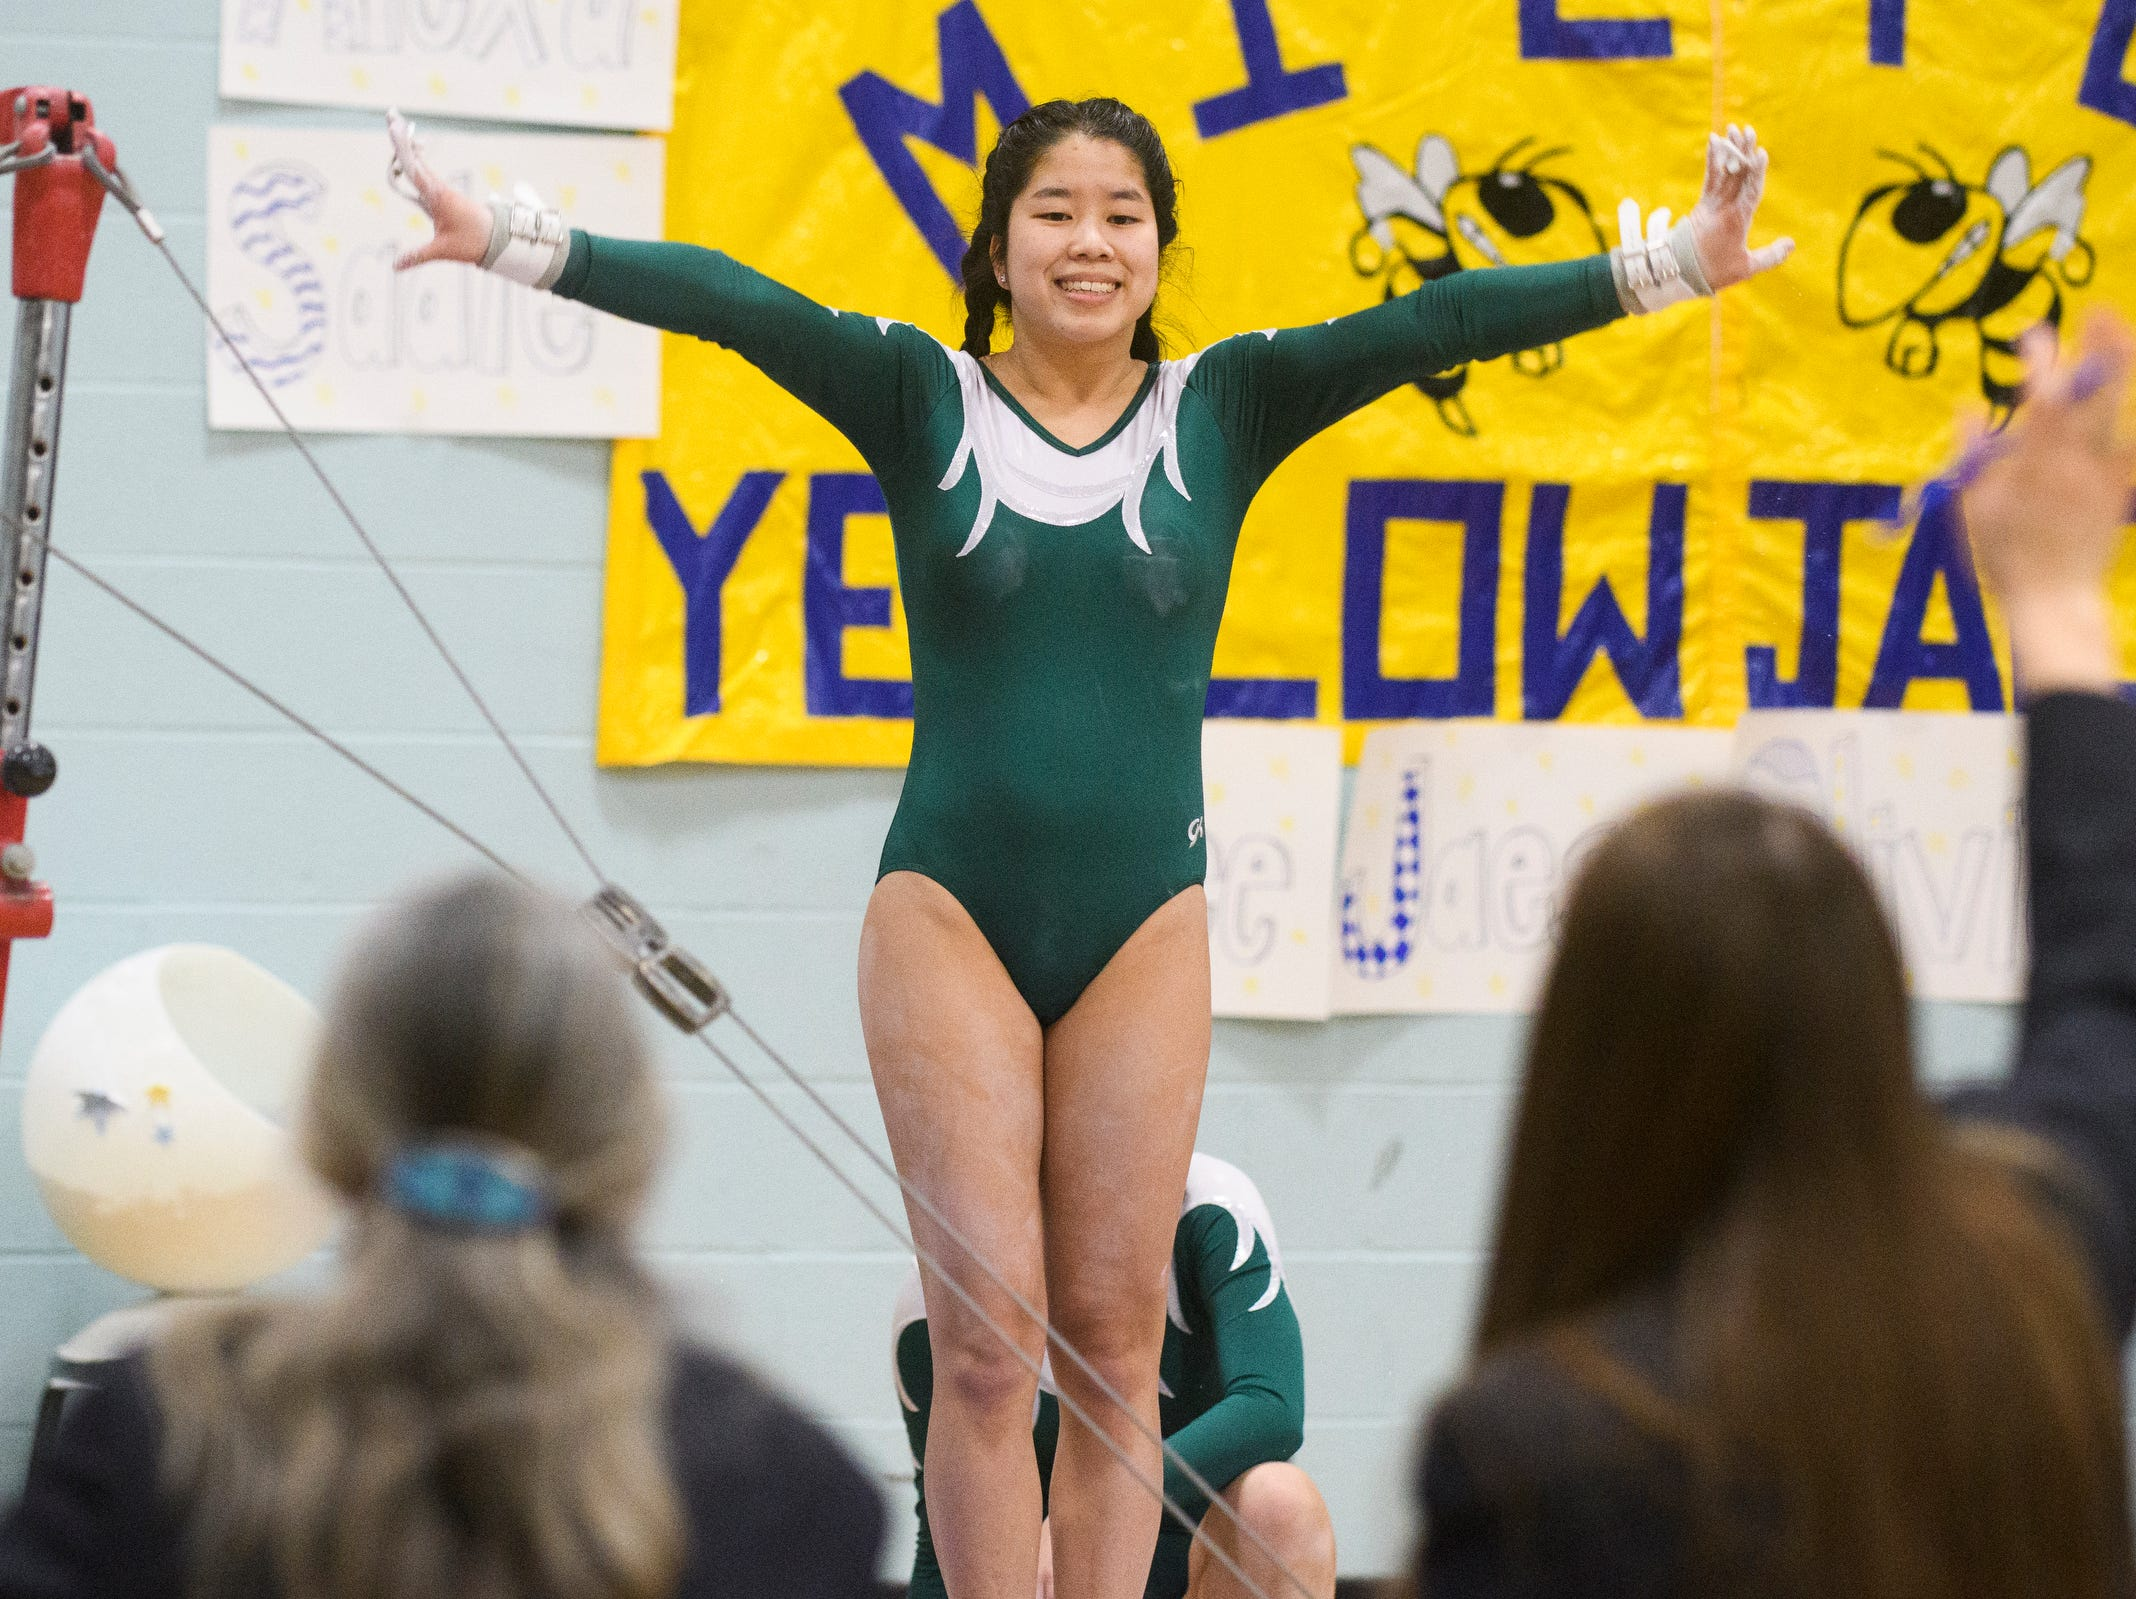 St. Johnsbury's Emma Stelzner signals to the judges that she's ready to compete in the bars during the 2019 high school gymnastics championship at Essex High School on Saturday afternoon February 16, 2019 in Essex, Vermont.